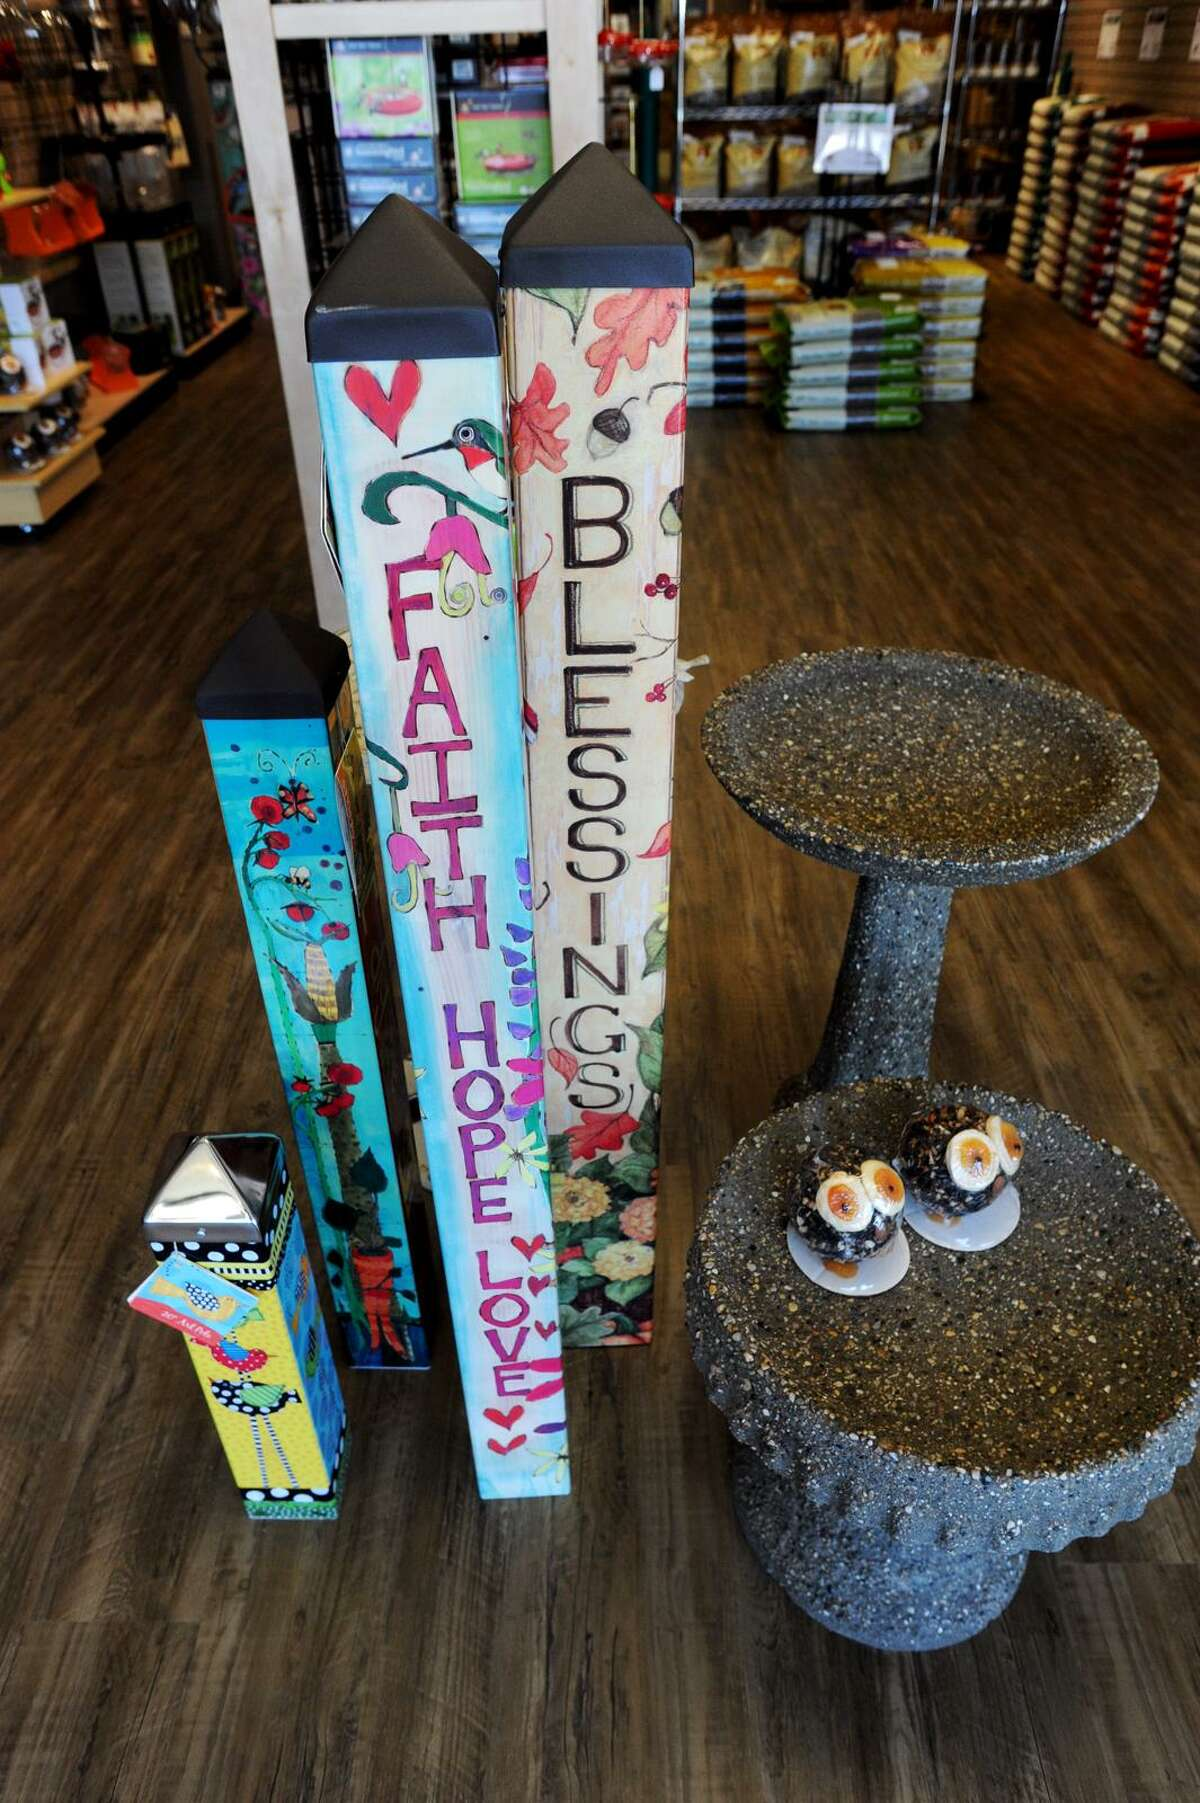 Wild Birds Unlimited in Fairfield offers a wide variety of items, like garden poles and birdbaths, to help people enjoy their backyard.